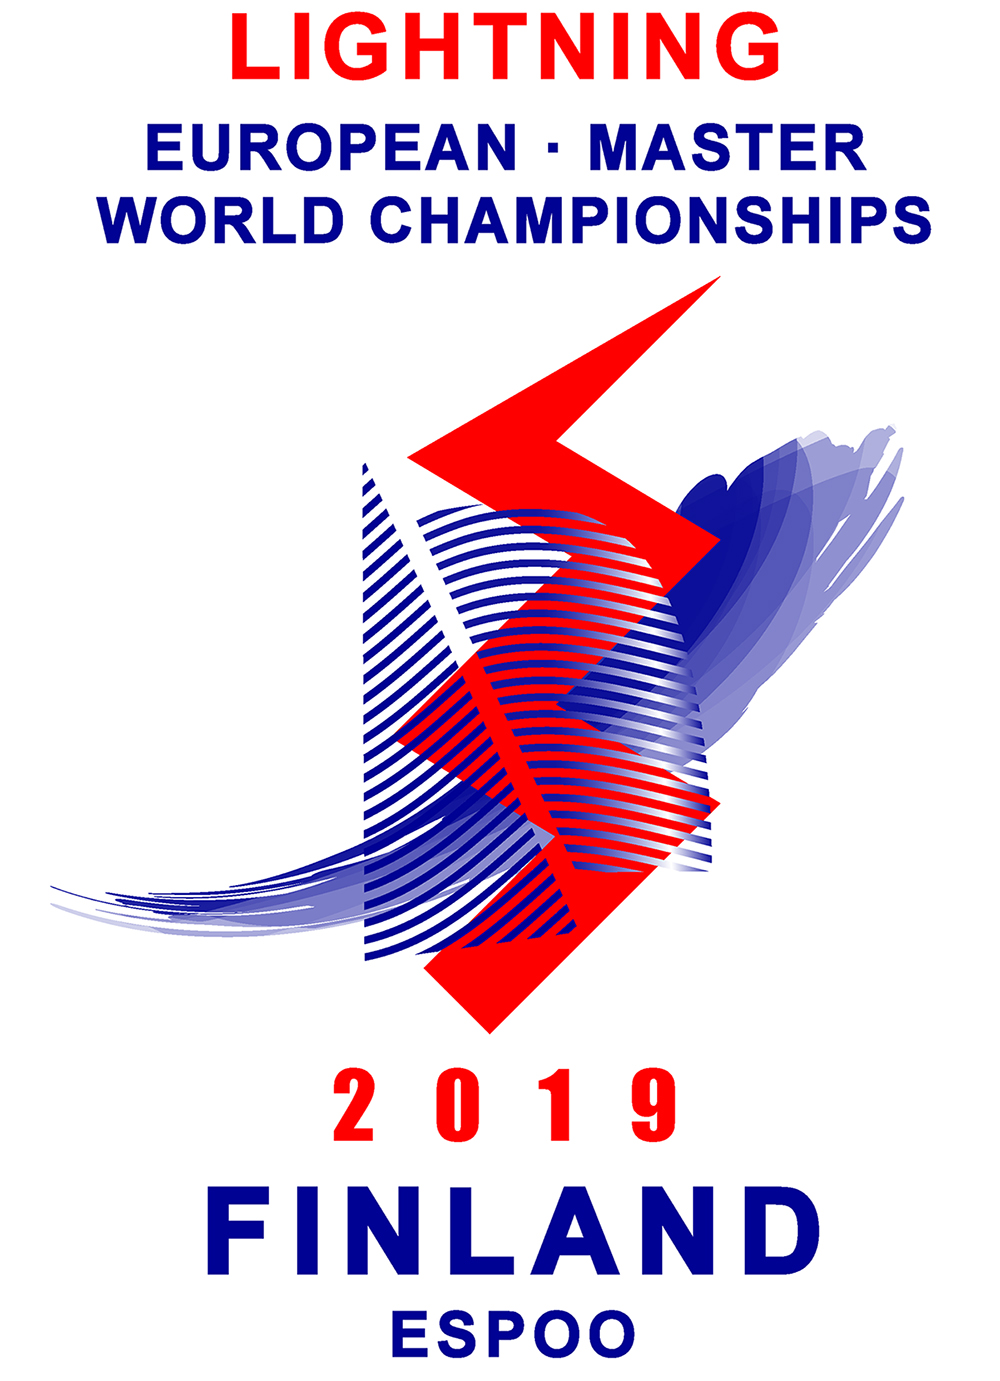 Lightning Worlds2019 logo by Veera Siira 1380px version.jpg